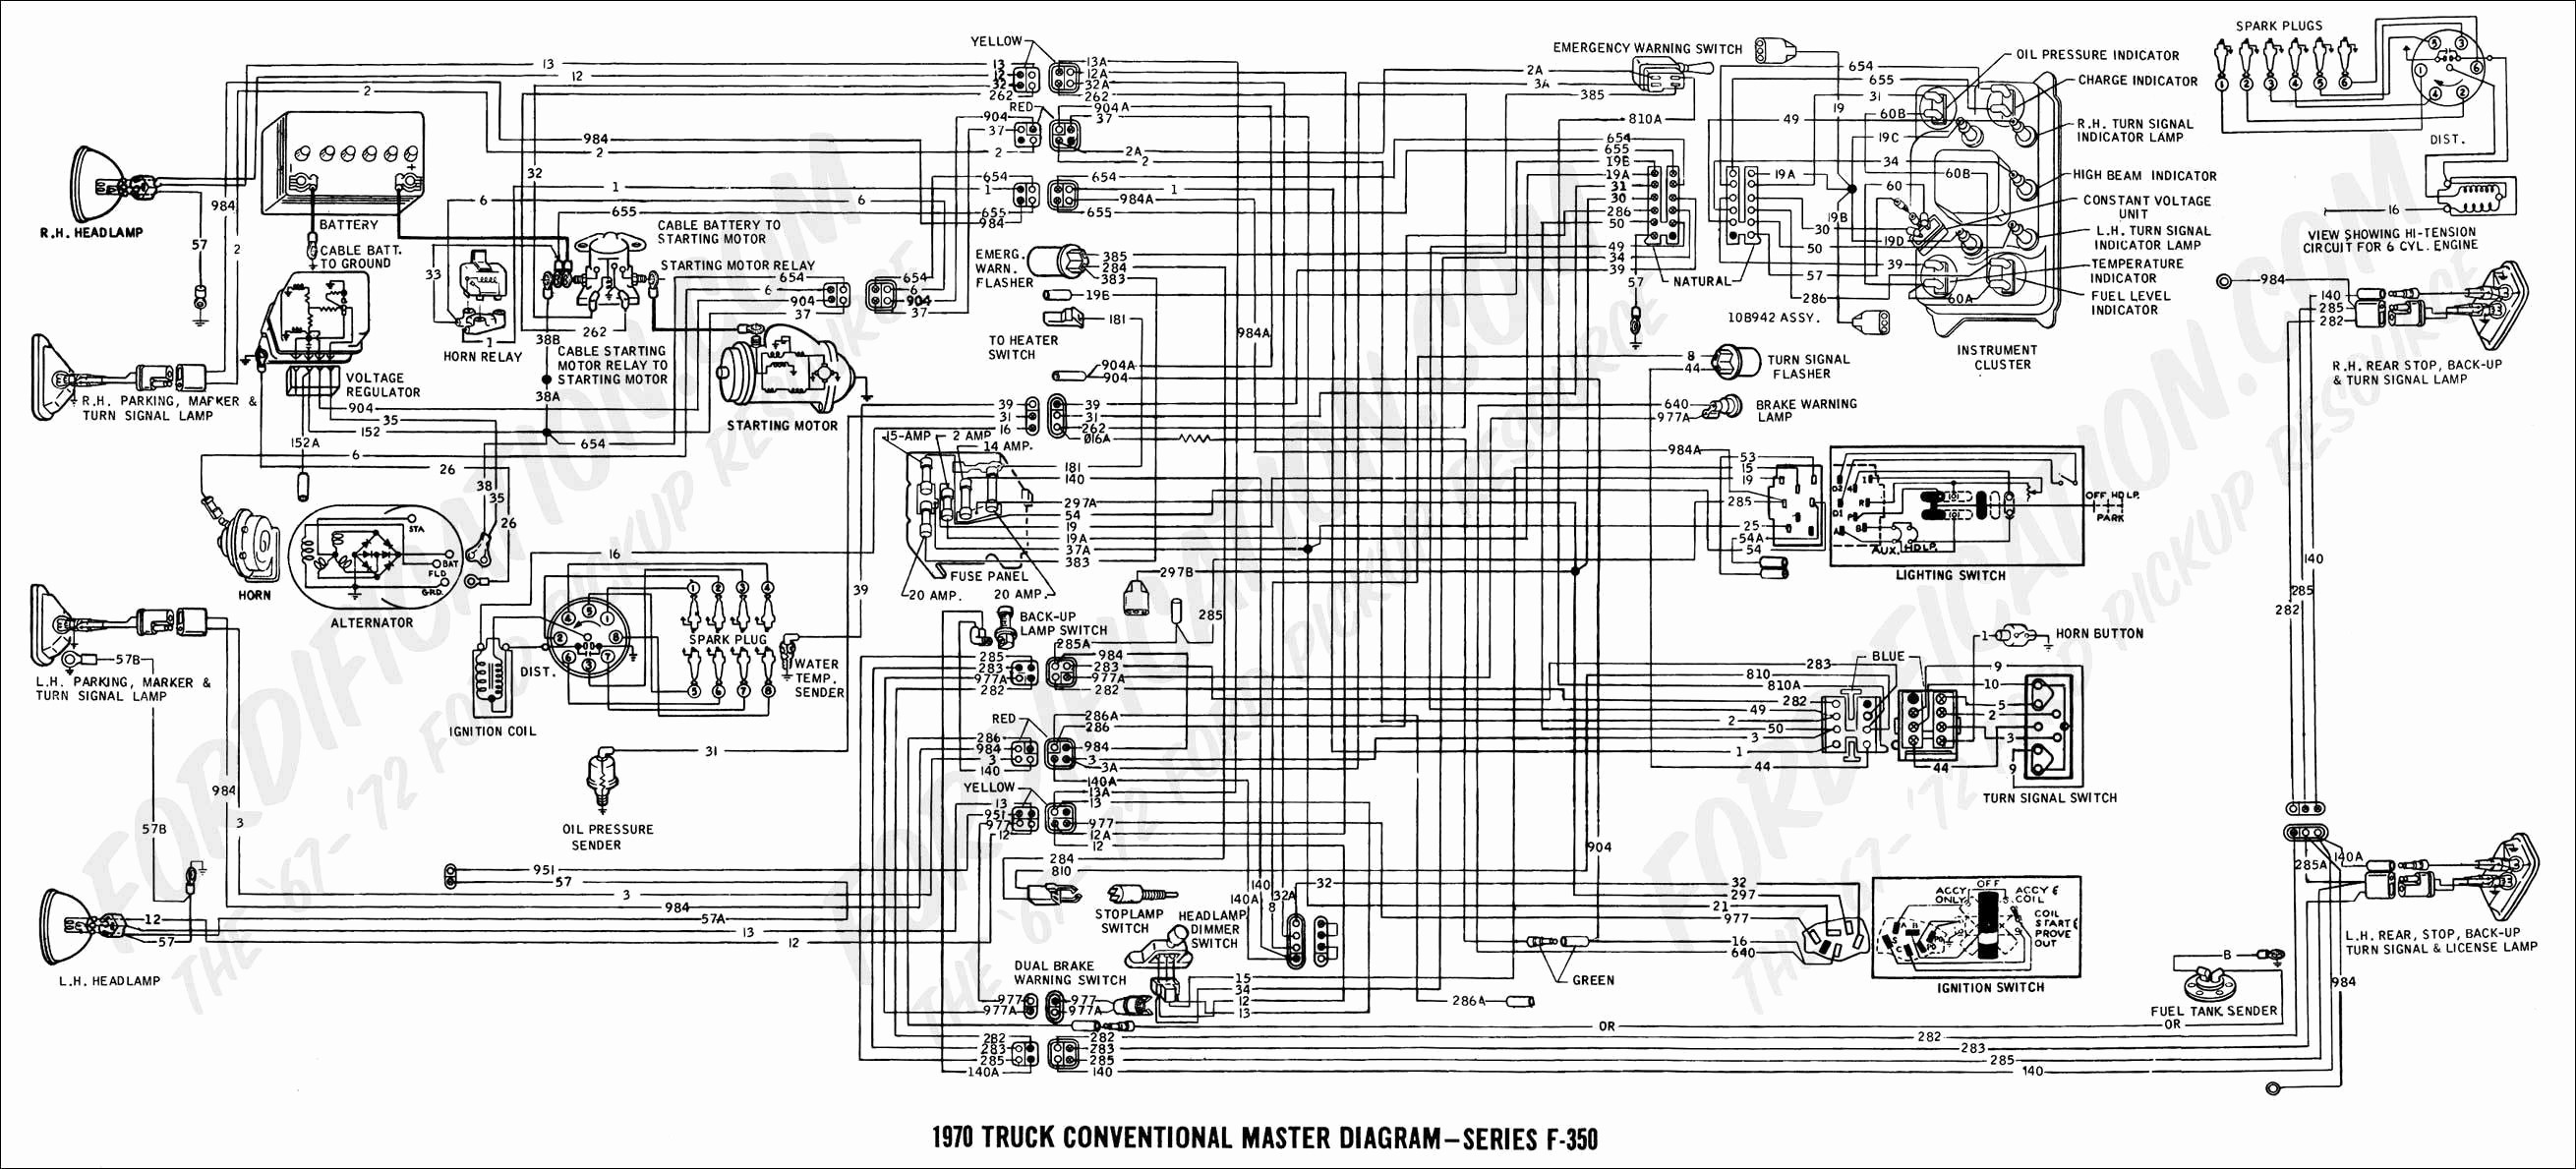 Vsm Wiring Schematic Wire Data Schema Corolla Diagram On Understanding Diagrams For Hvacr 900 Colors Diy Enthusiasts U2022 Rh Okdrywall Co Arduino Schematics Johnson Outboards